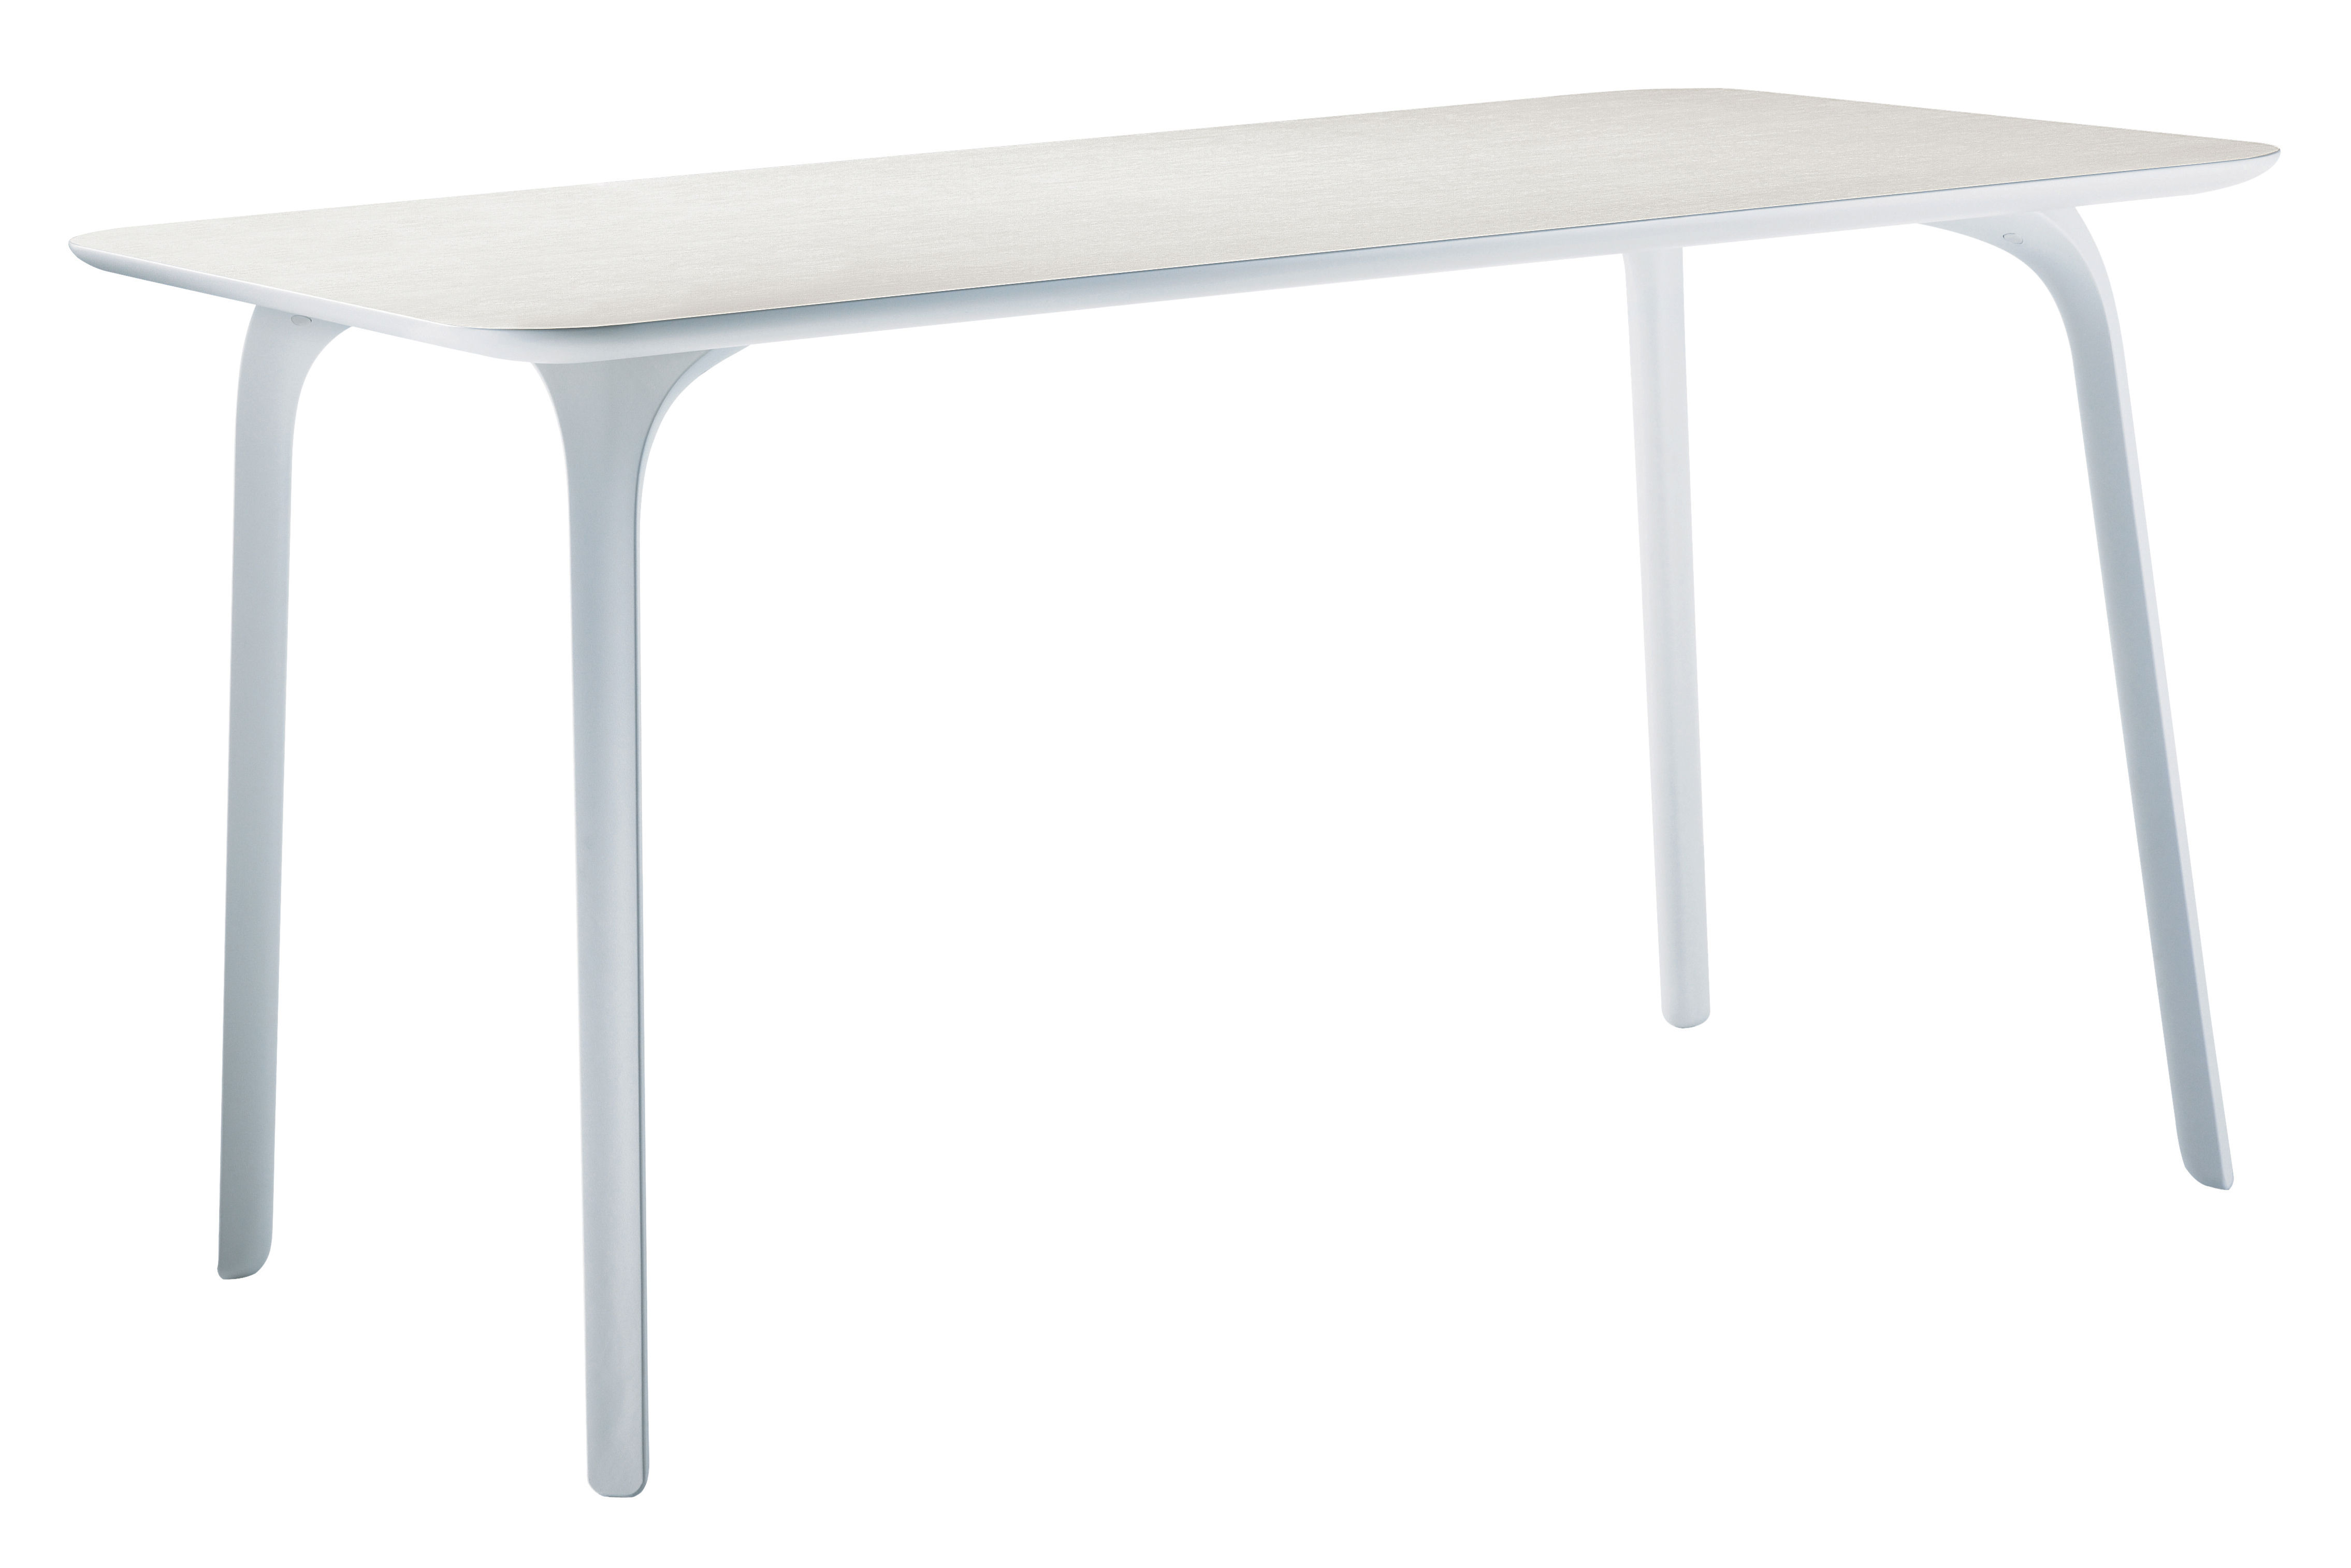 Furniture - Dining Tables - First Rectangular table - Rectangular - Indoor use by Magis - White feet - white top - Polyamide, Varnished MDF